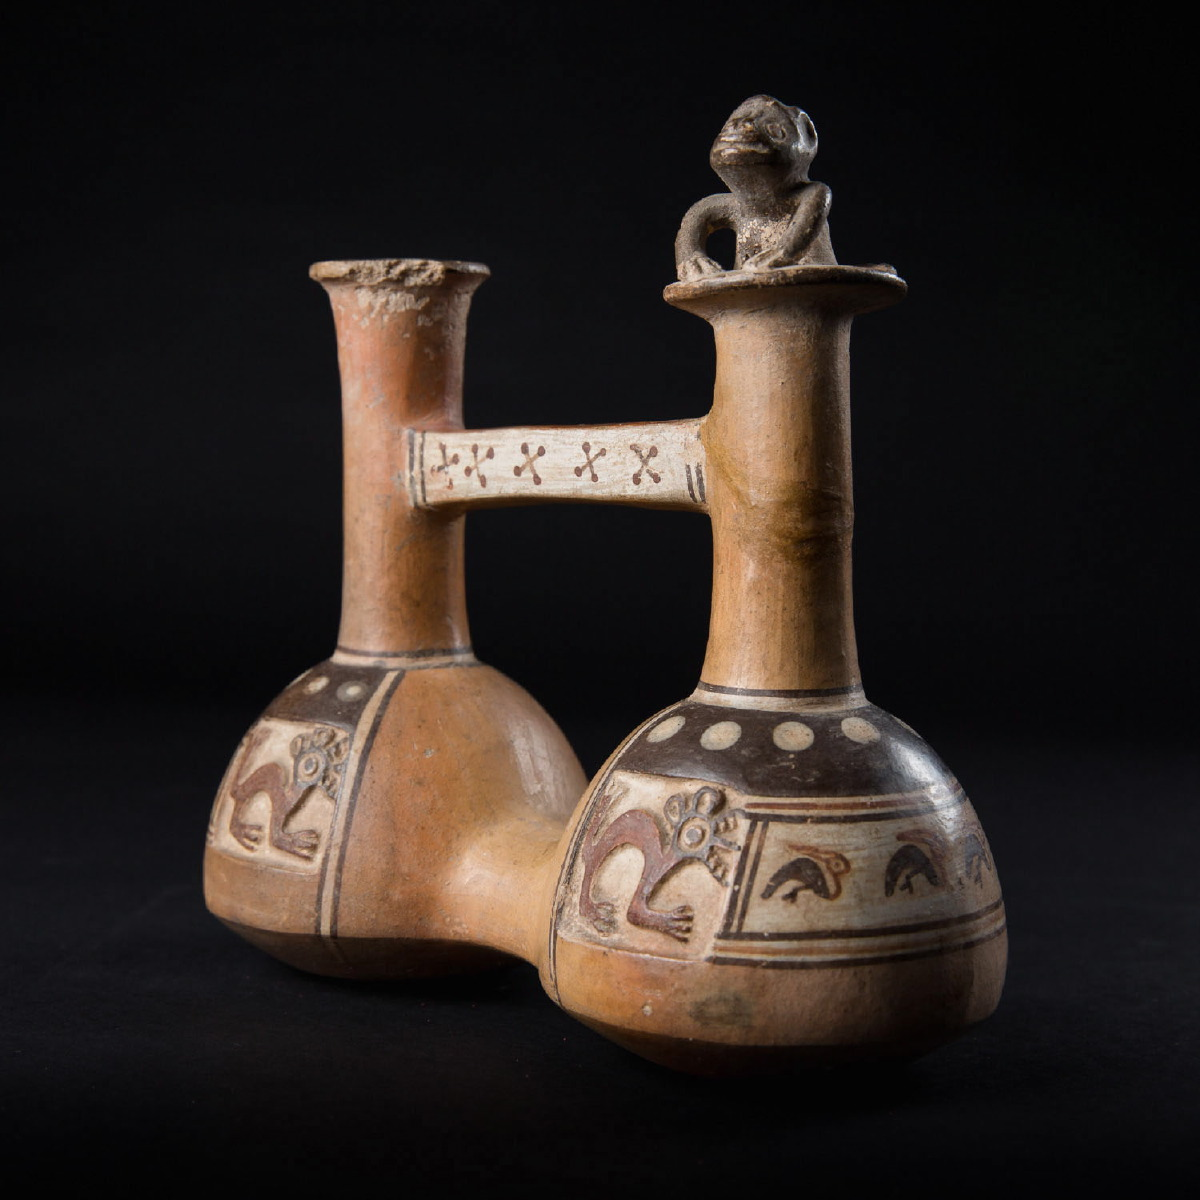 Photo of ancient-art-inca-vase-vessel-pottery-peru-archeology-galerie-golconda-beryl-cavallini-specialist